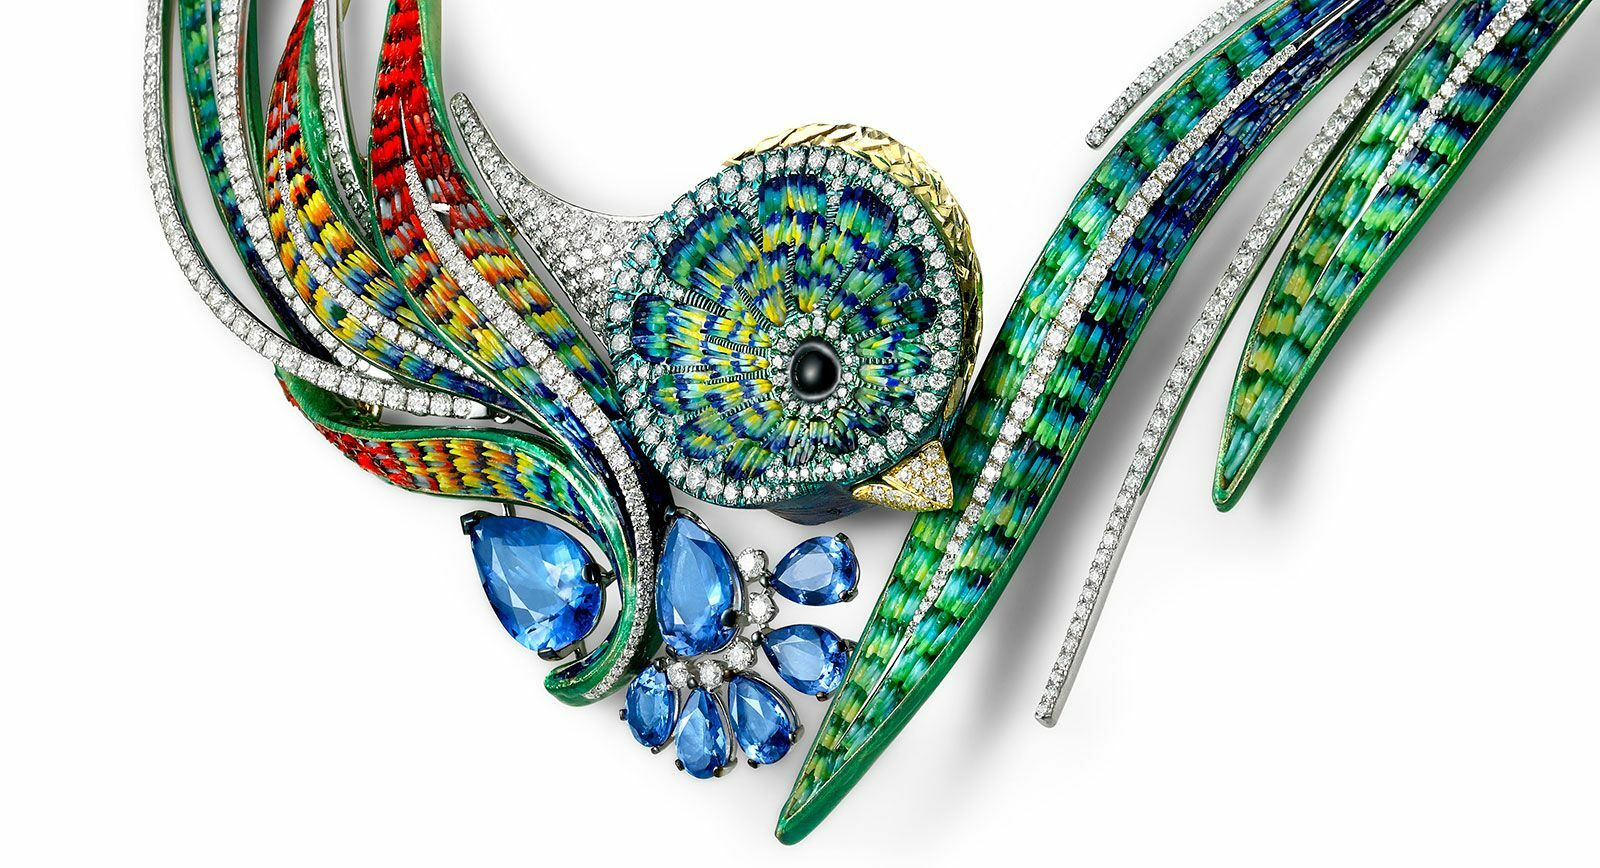 The Quetzal Necklace: a Continuation of the Eponymous Surreal Jewellery Line From Sicis